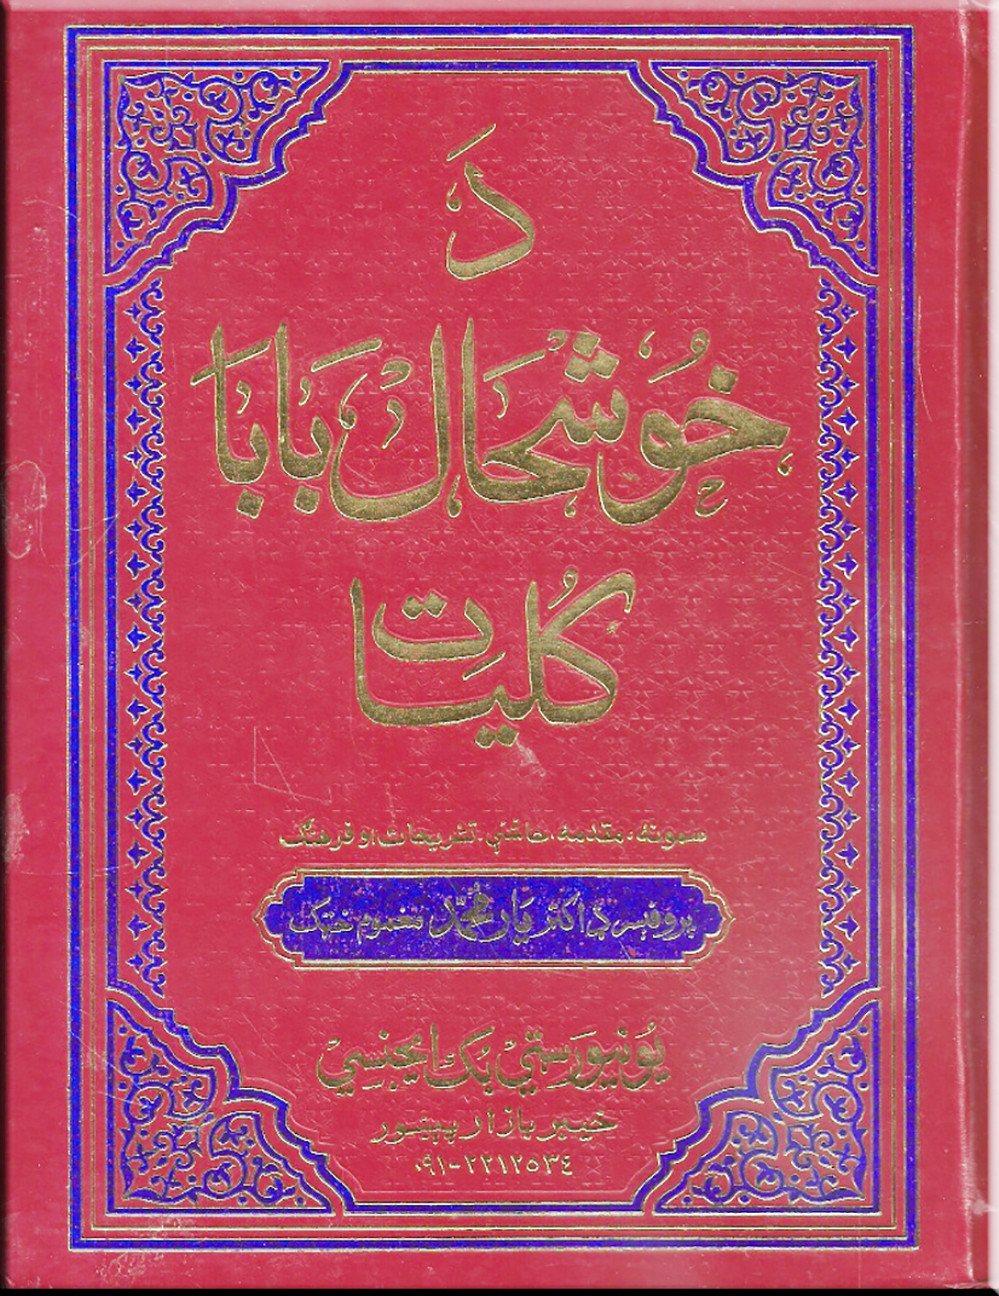 Complete works of Khushal Khattak a 19th century Pashtun warrior, epic and mystic poet. Khushal Khattak represents the essence of Pashtun people.